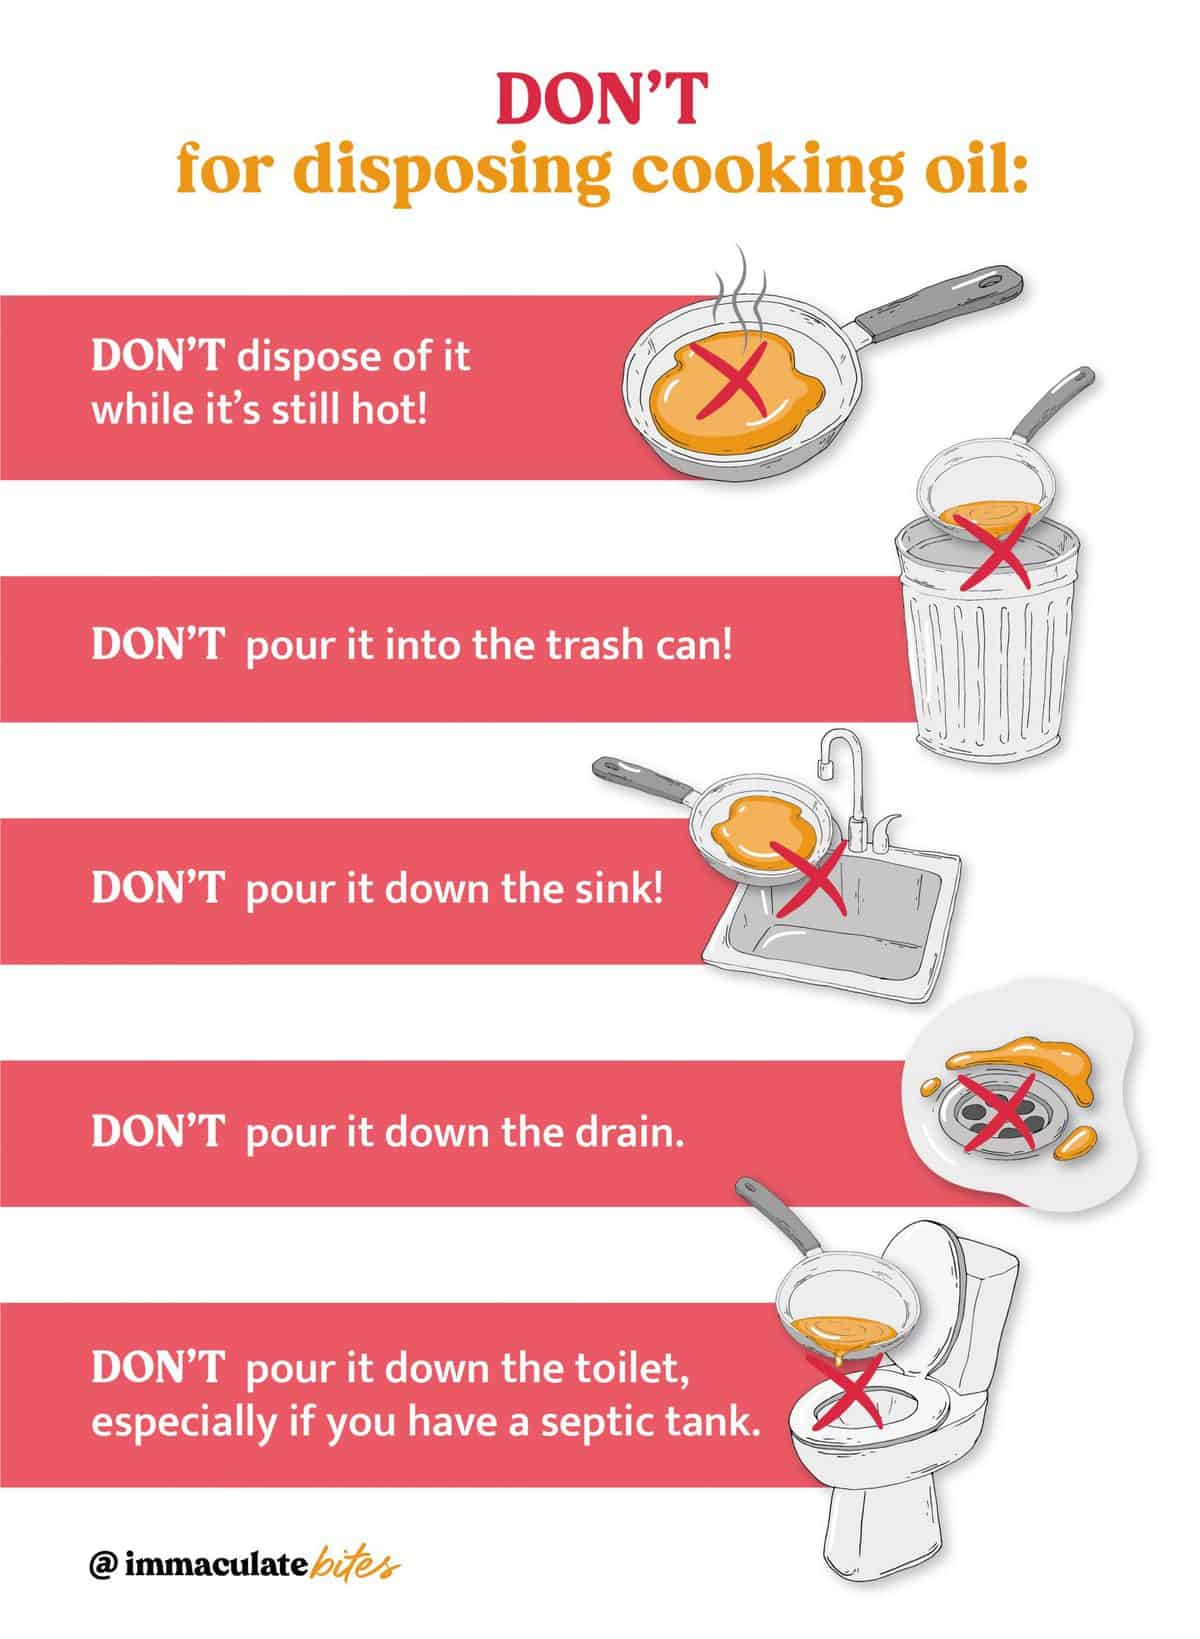 Don'ts of disposing oil